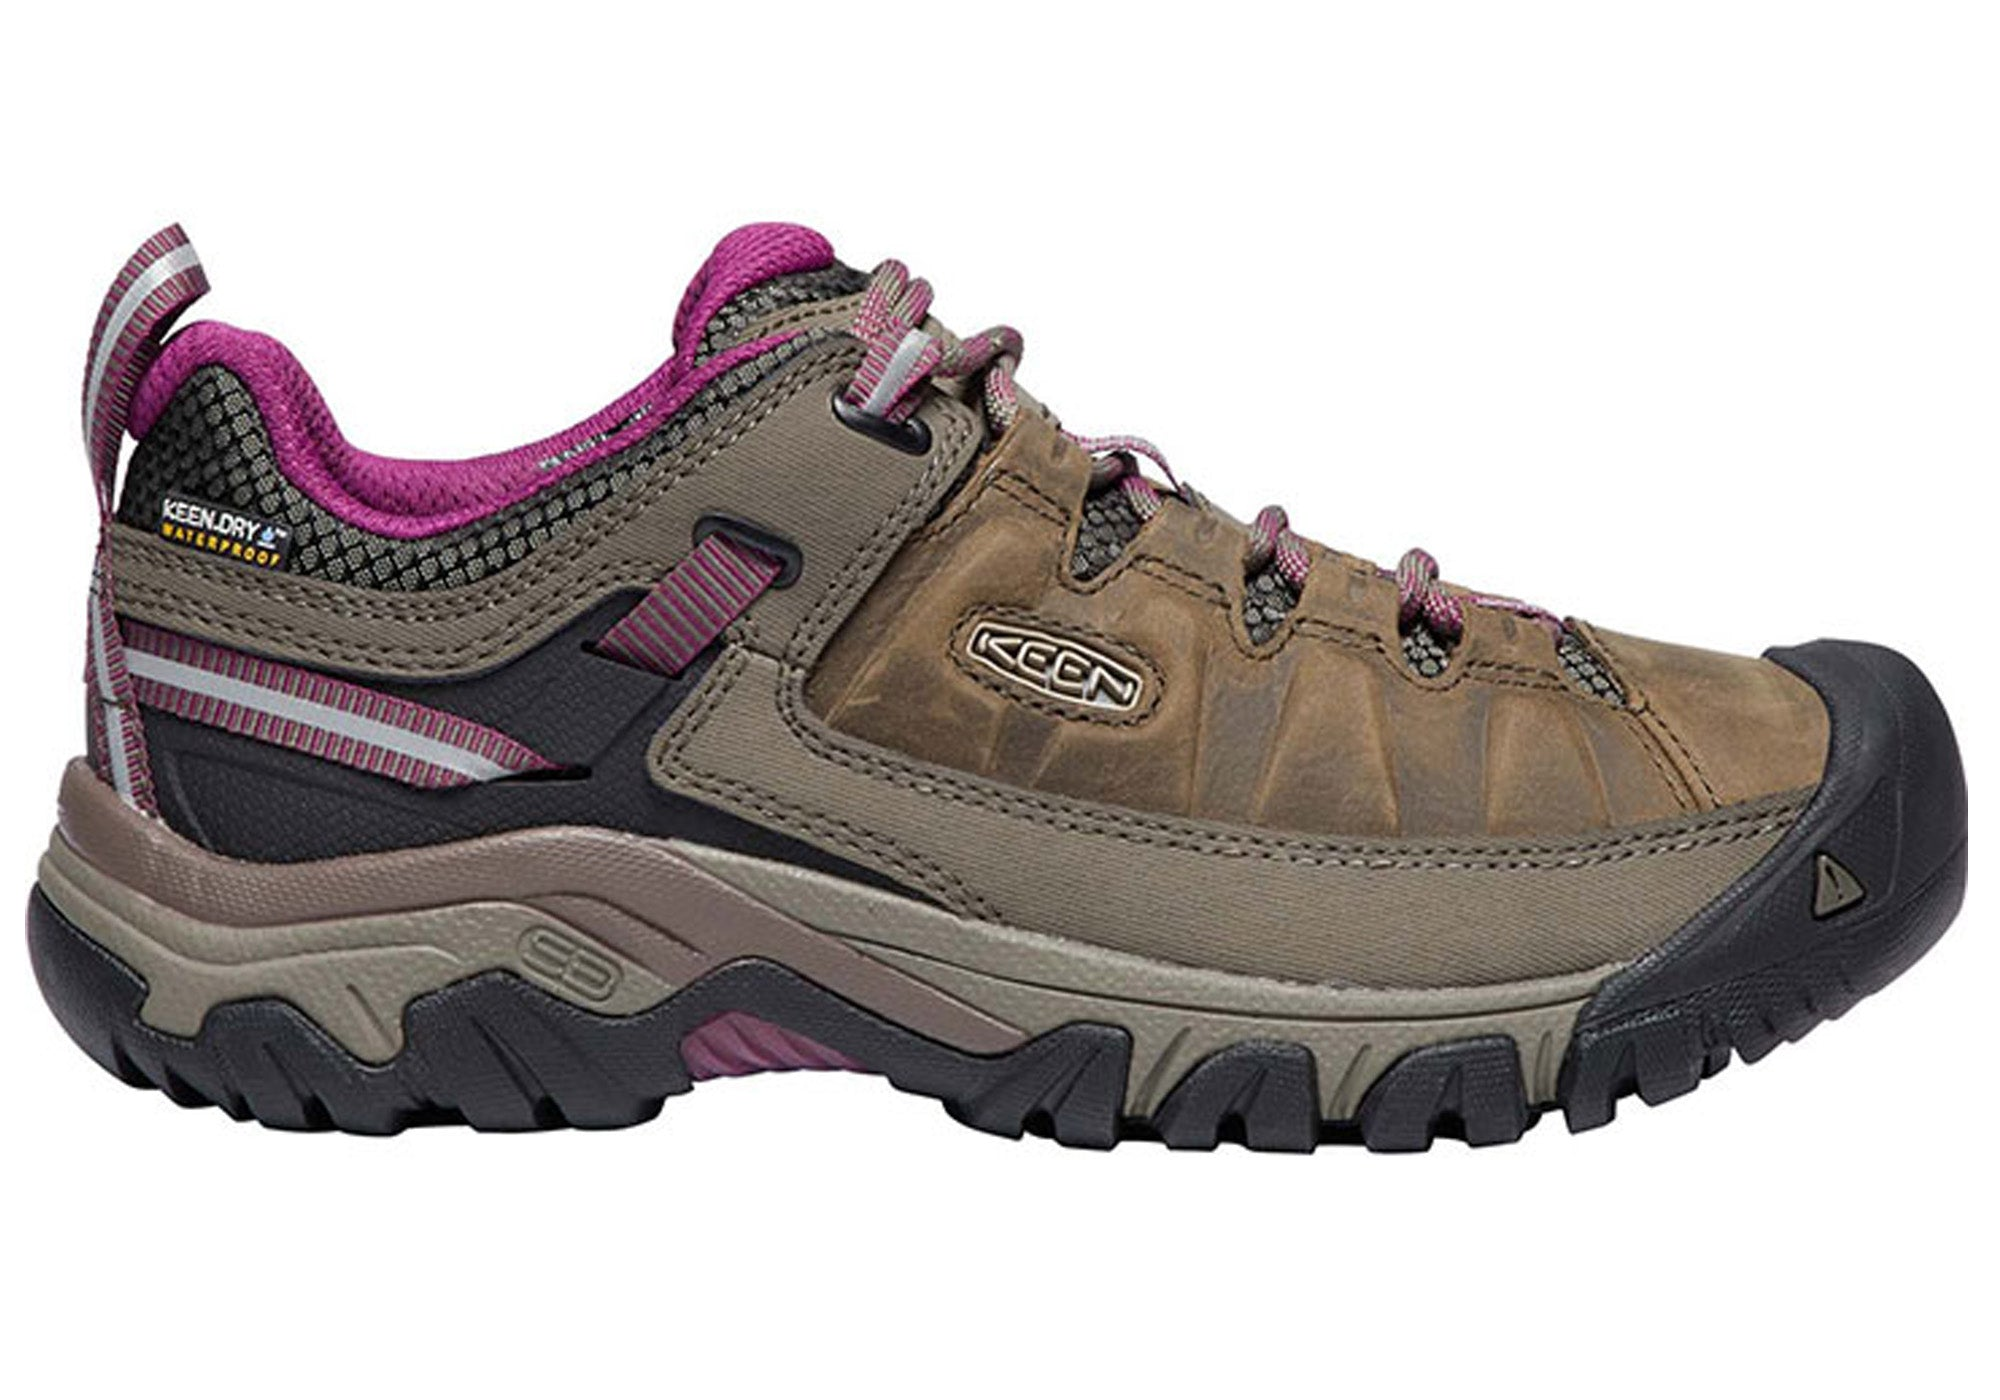 24588c56d54 Details about Brand New Keen Womens Targhee Iii Comfortable Waterproof  Hiking Boots